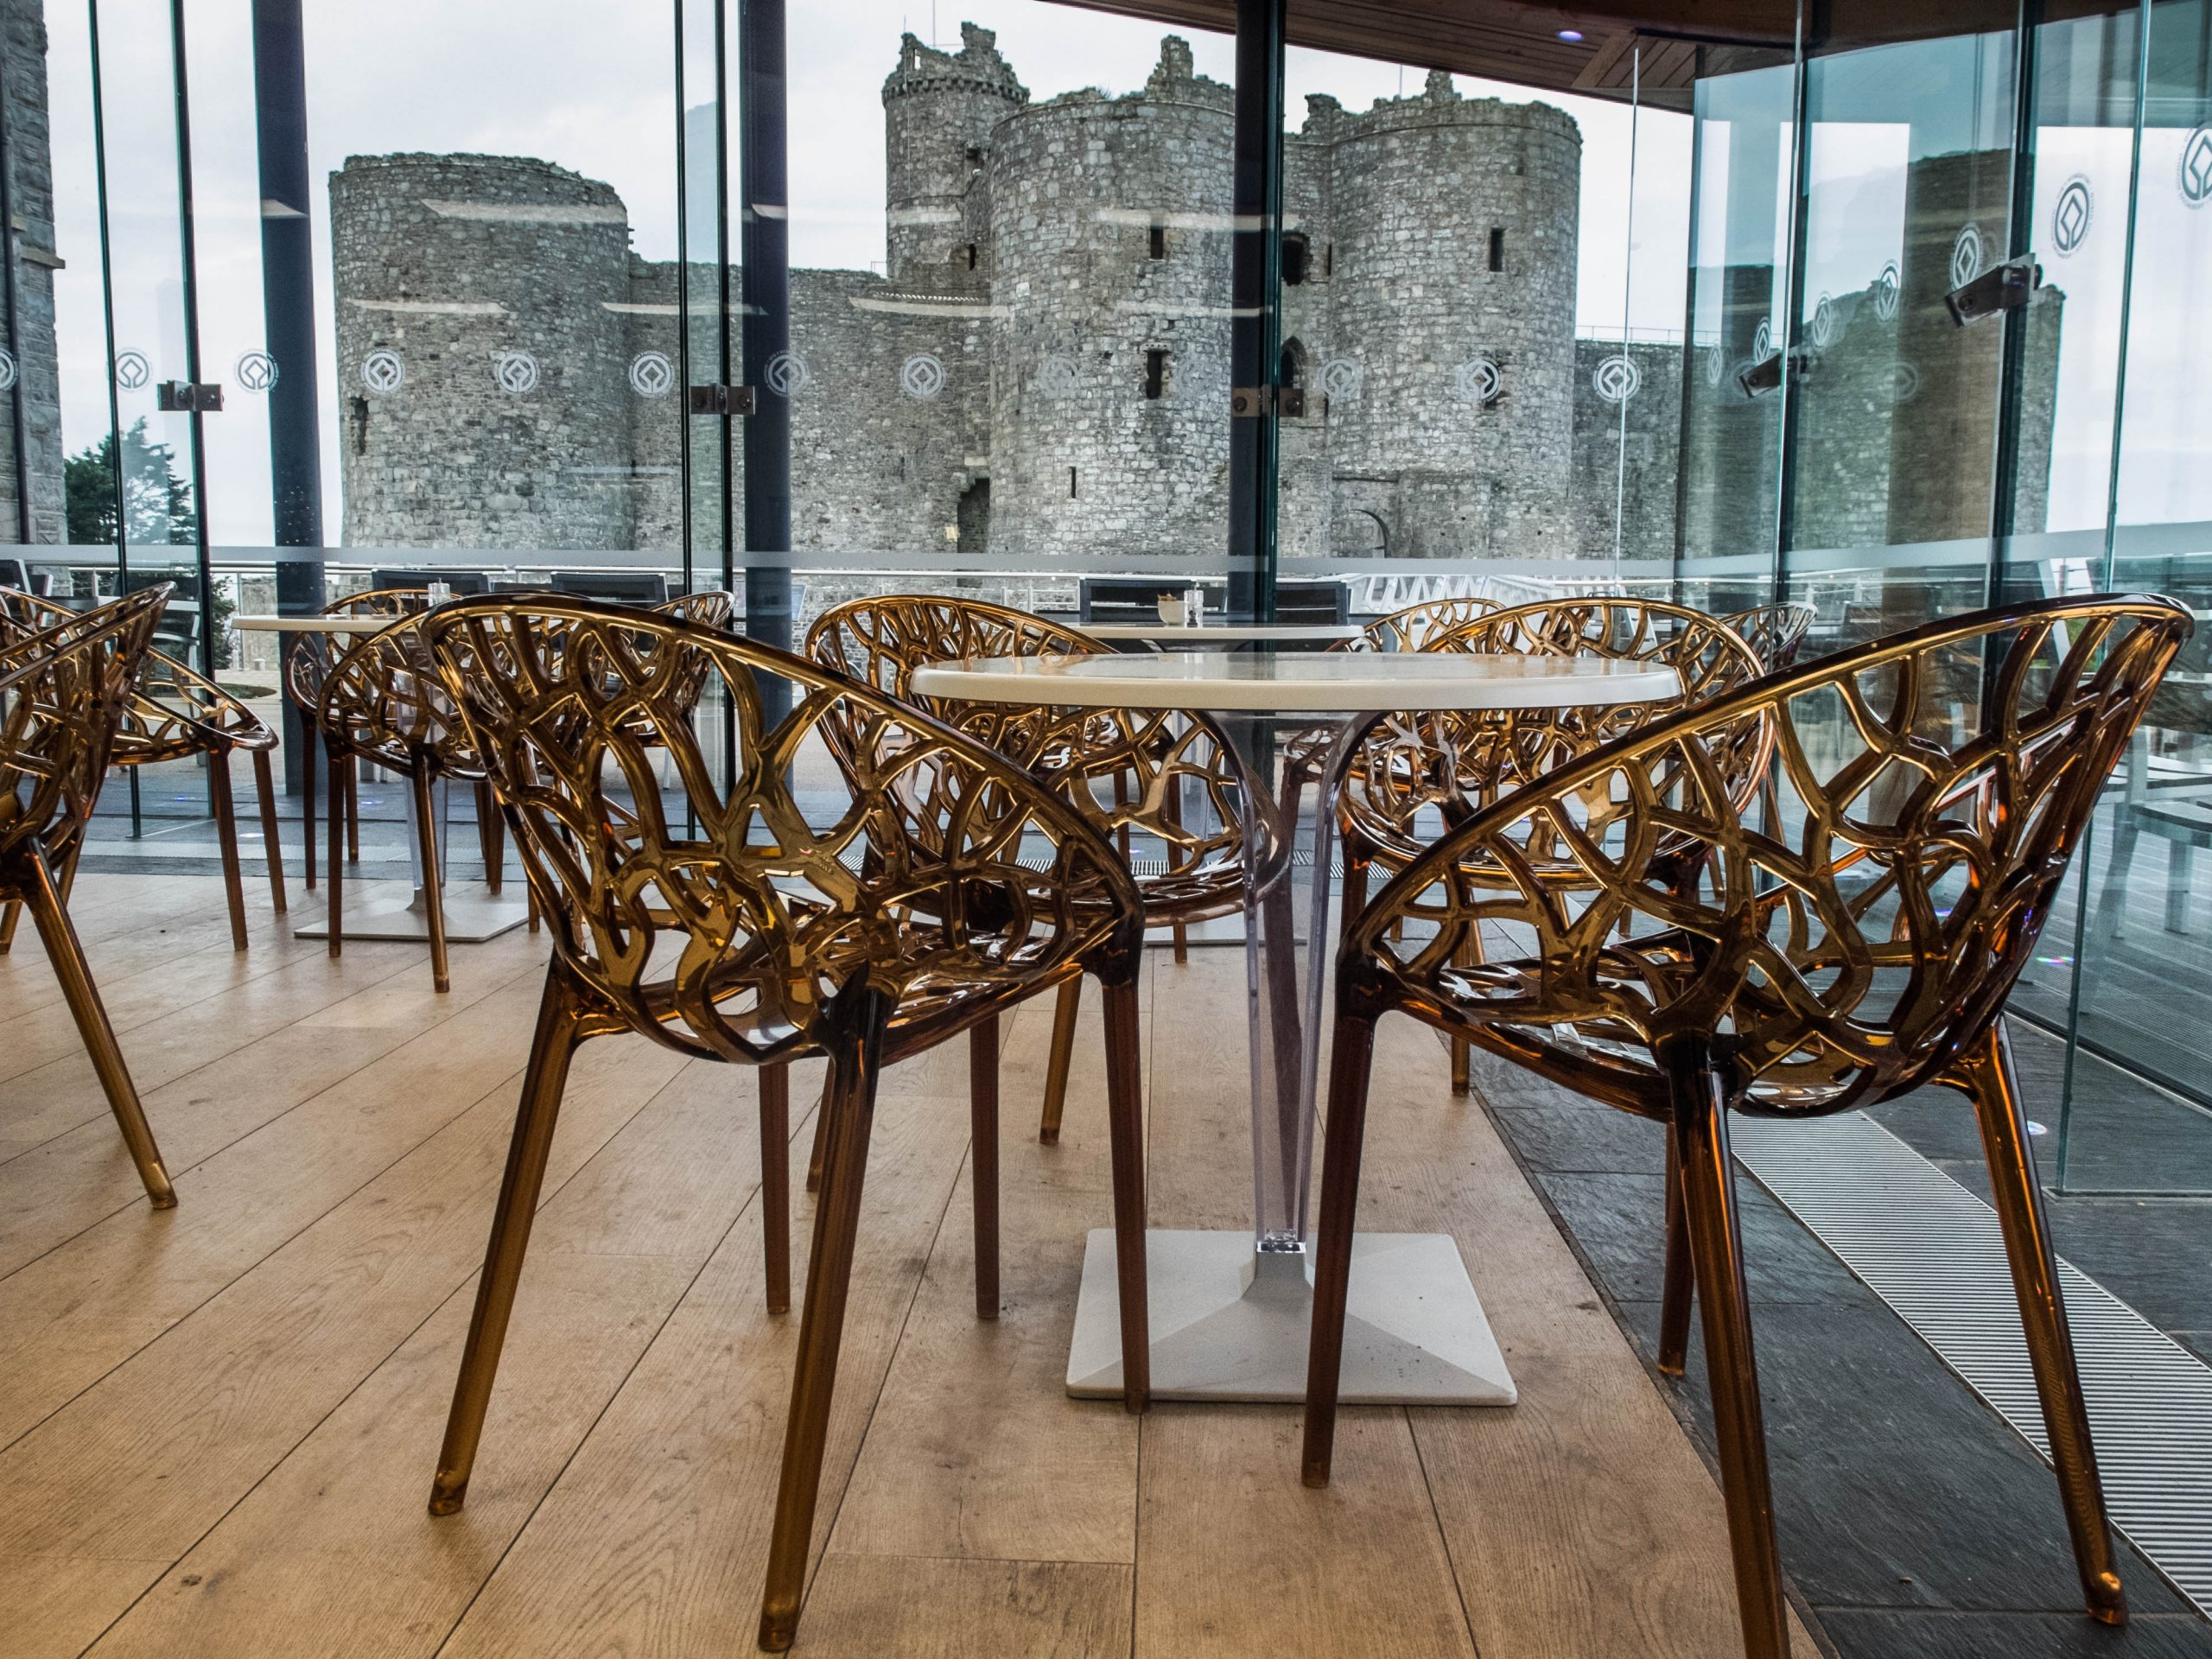 inside Caffi Castell, with views of Harlech castle and Snowdonia